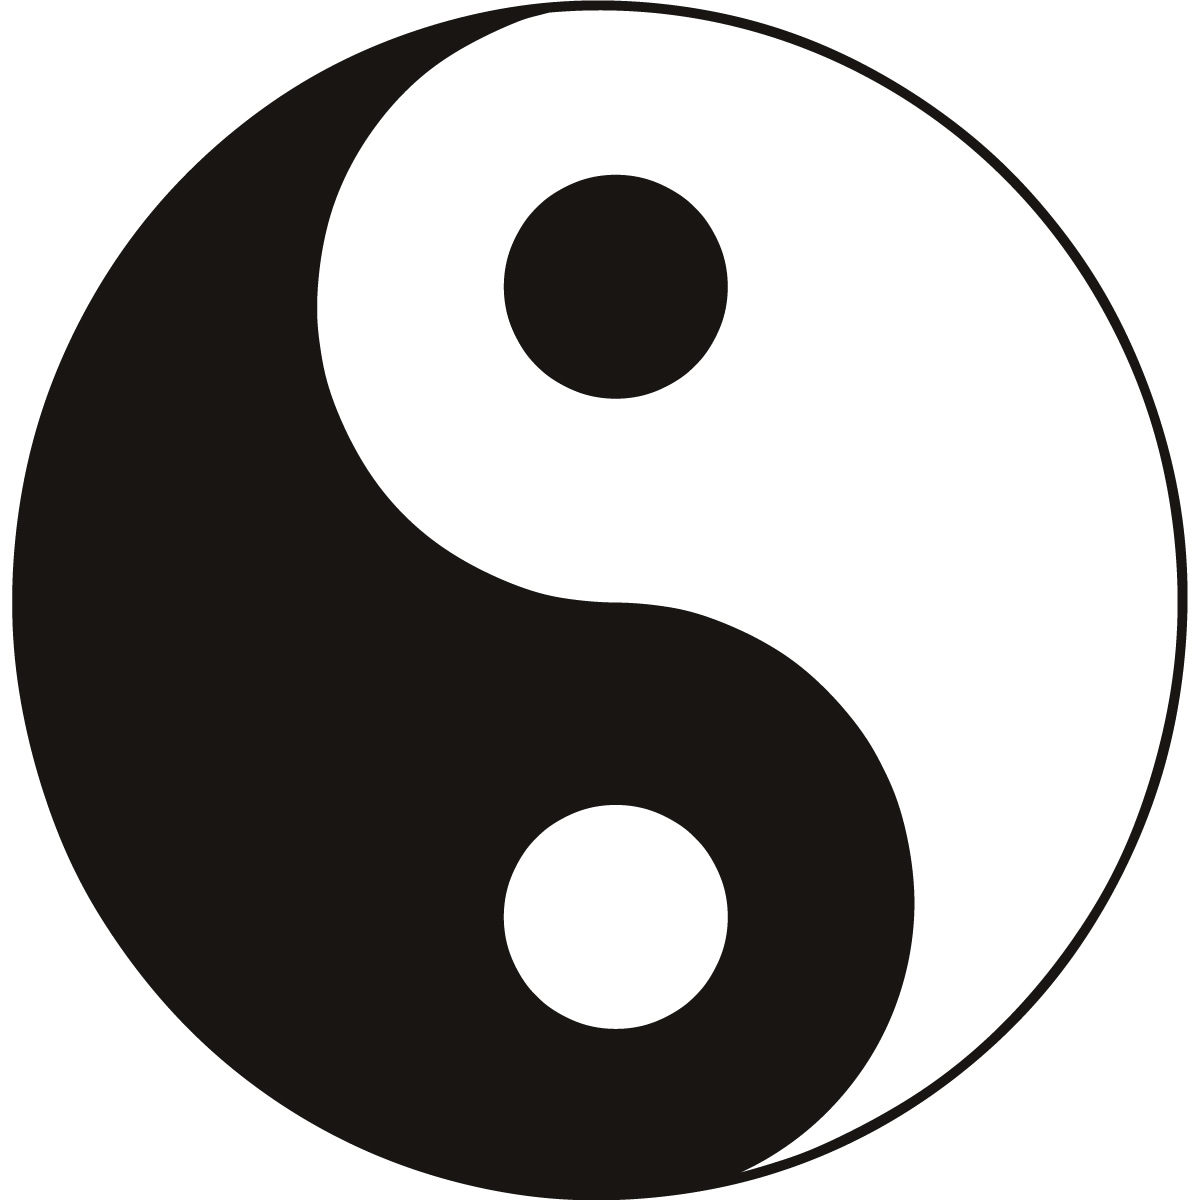 Ying Yang Symbol Sign Wall Art Stickers Wall Decal Transfers